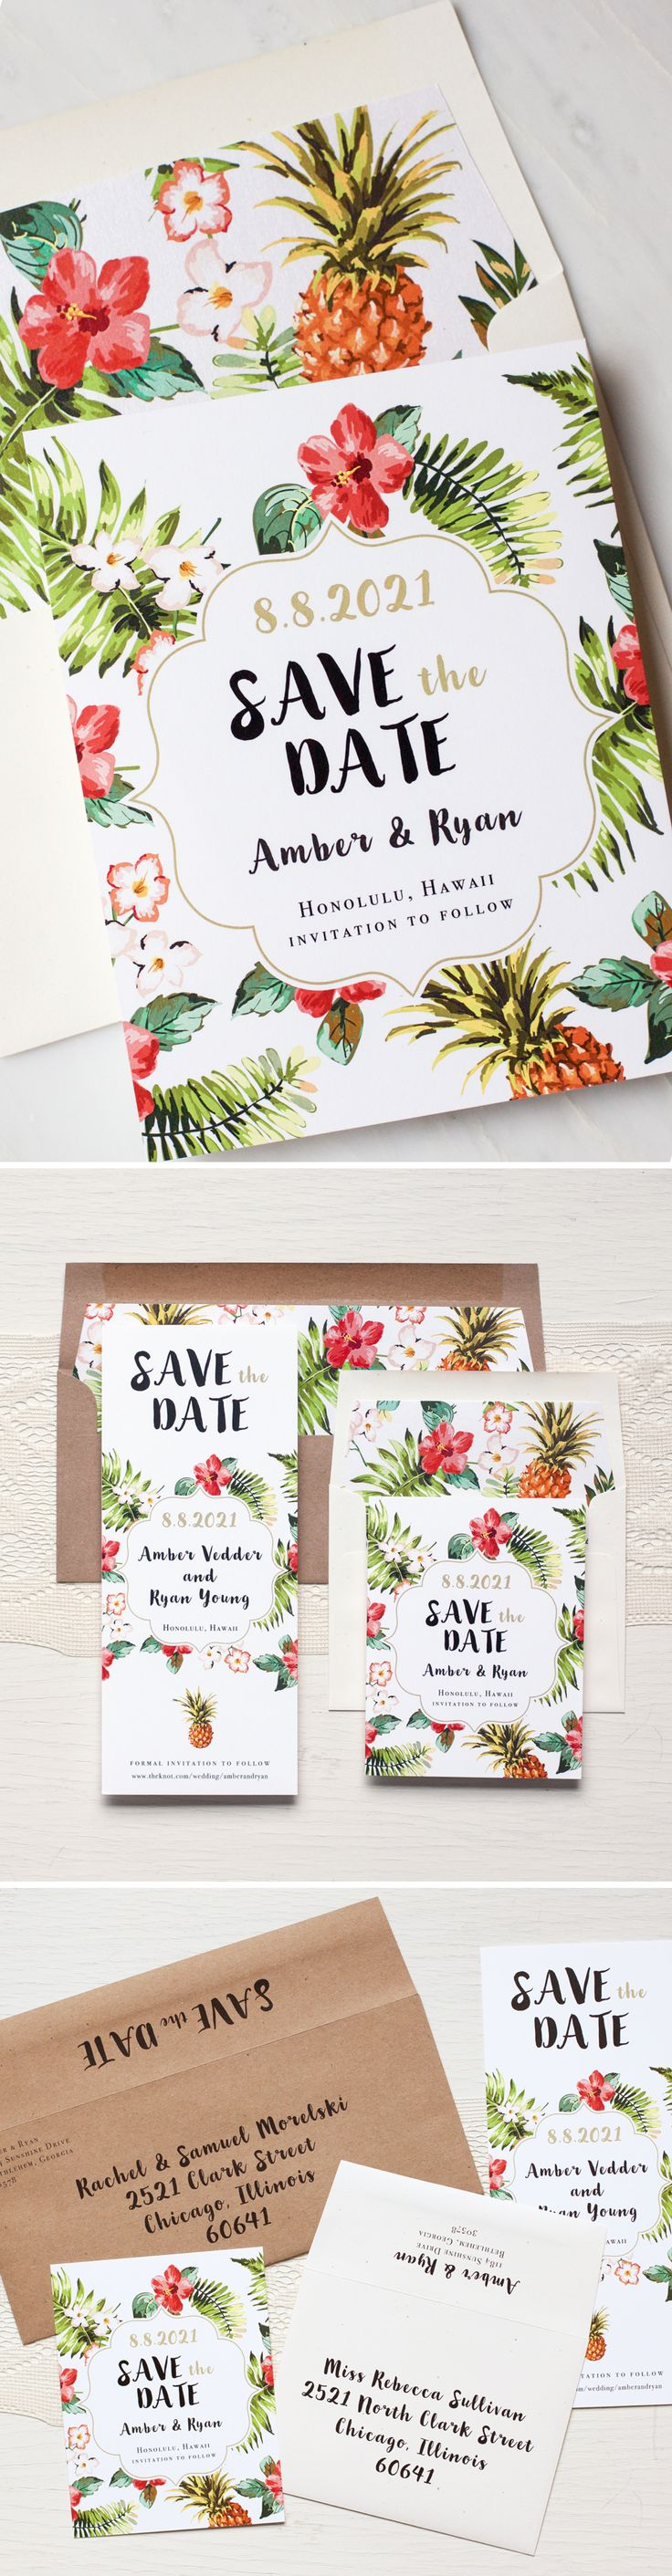 Aloha! Inspired by one of our favorite fruits, Pineapple Paradise save the dates are oh so cute. Layered with fresh tropical prints and hand written inspired fonts.